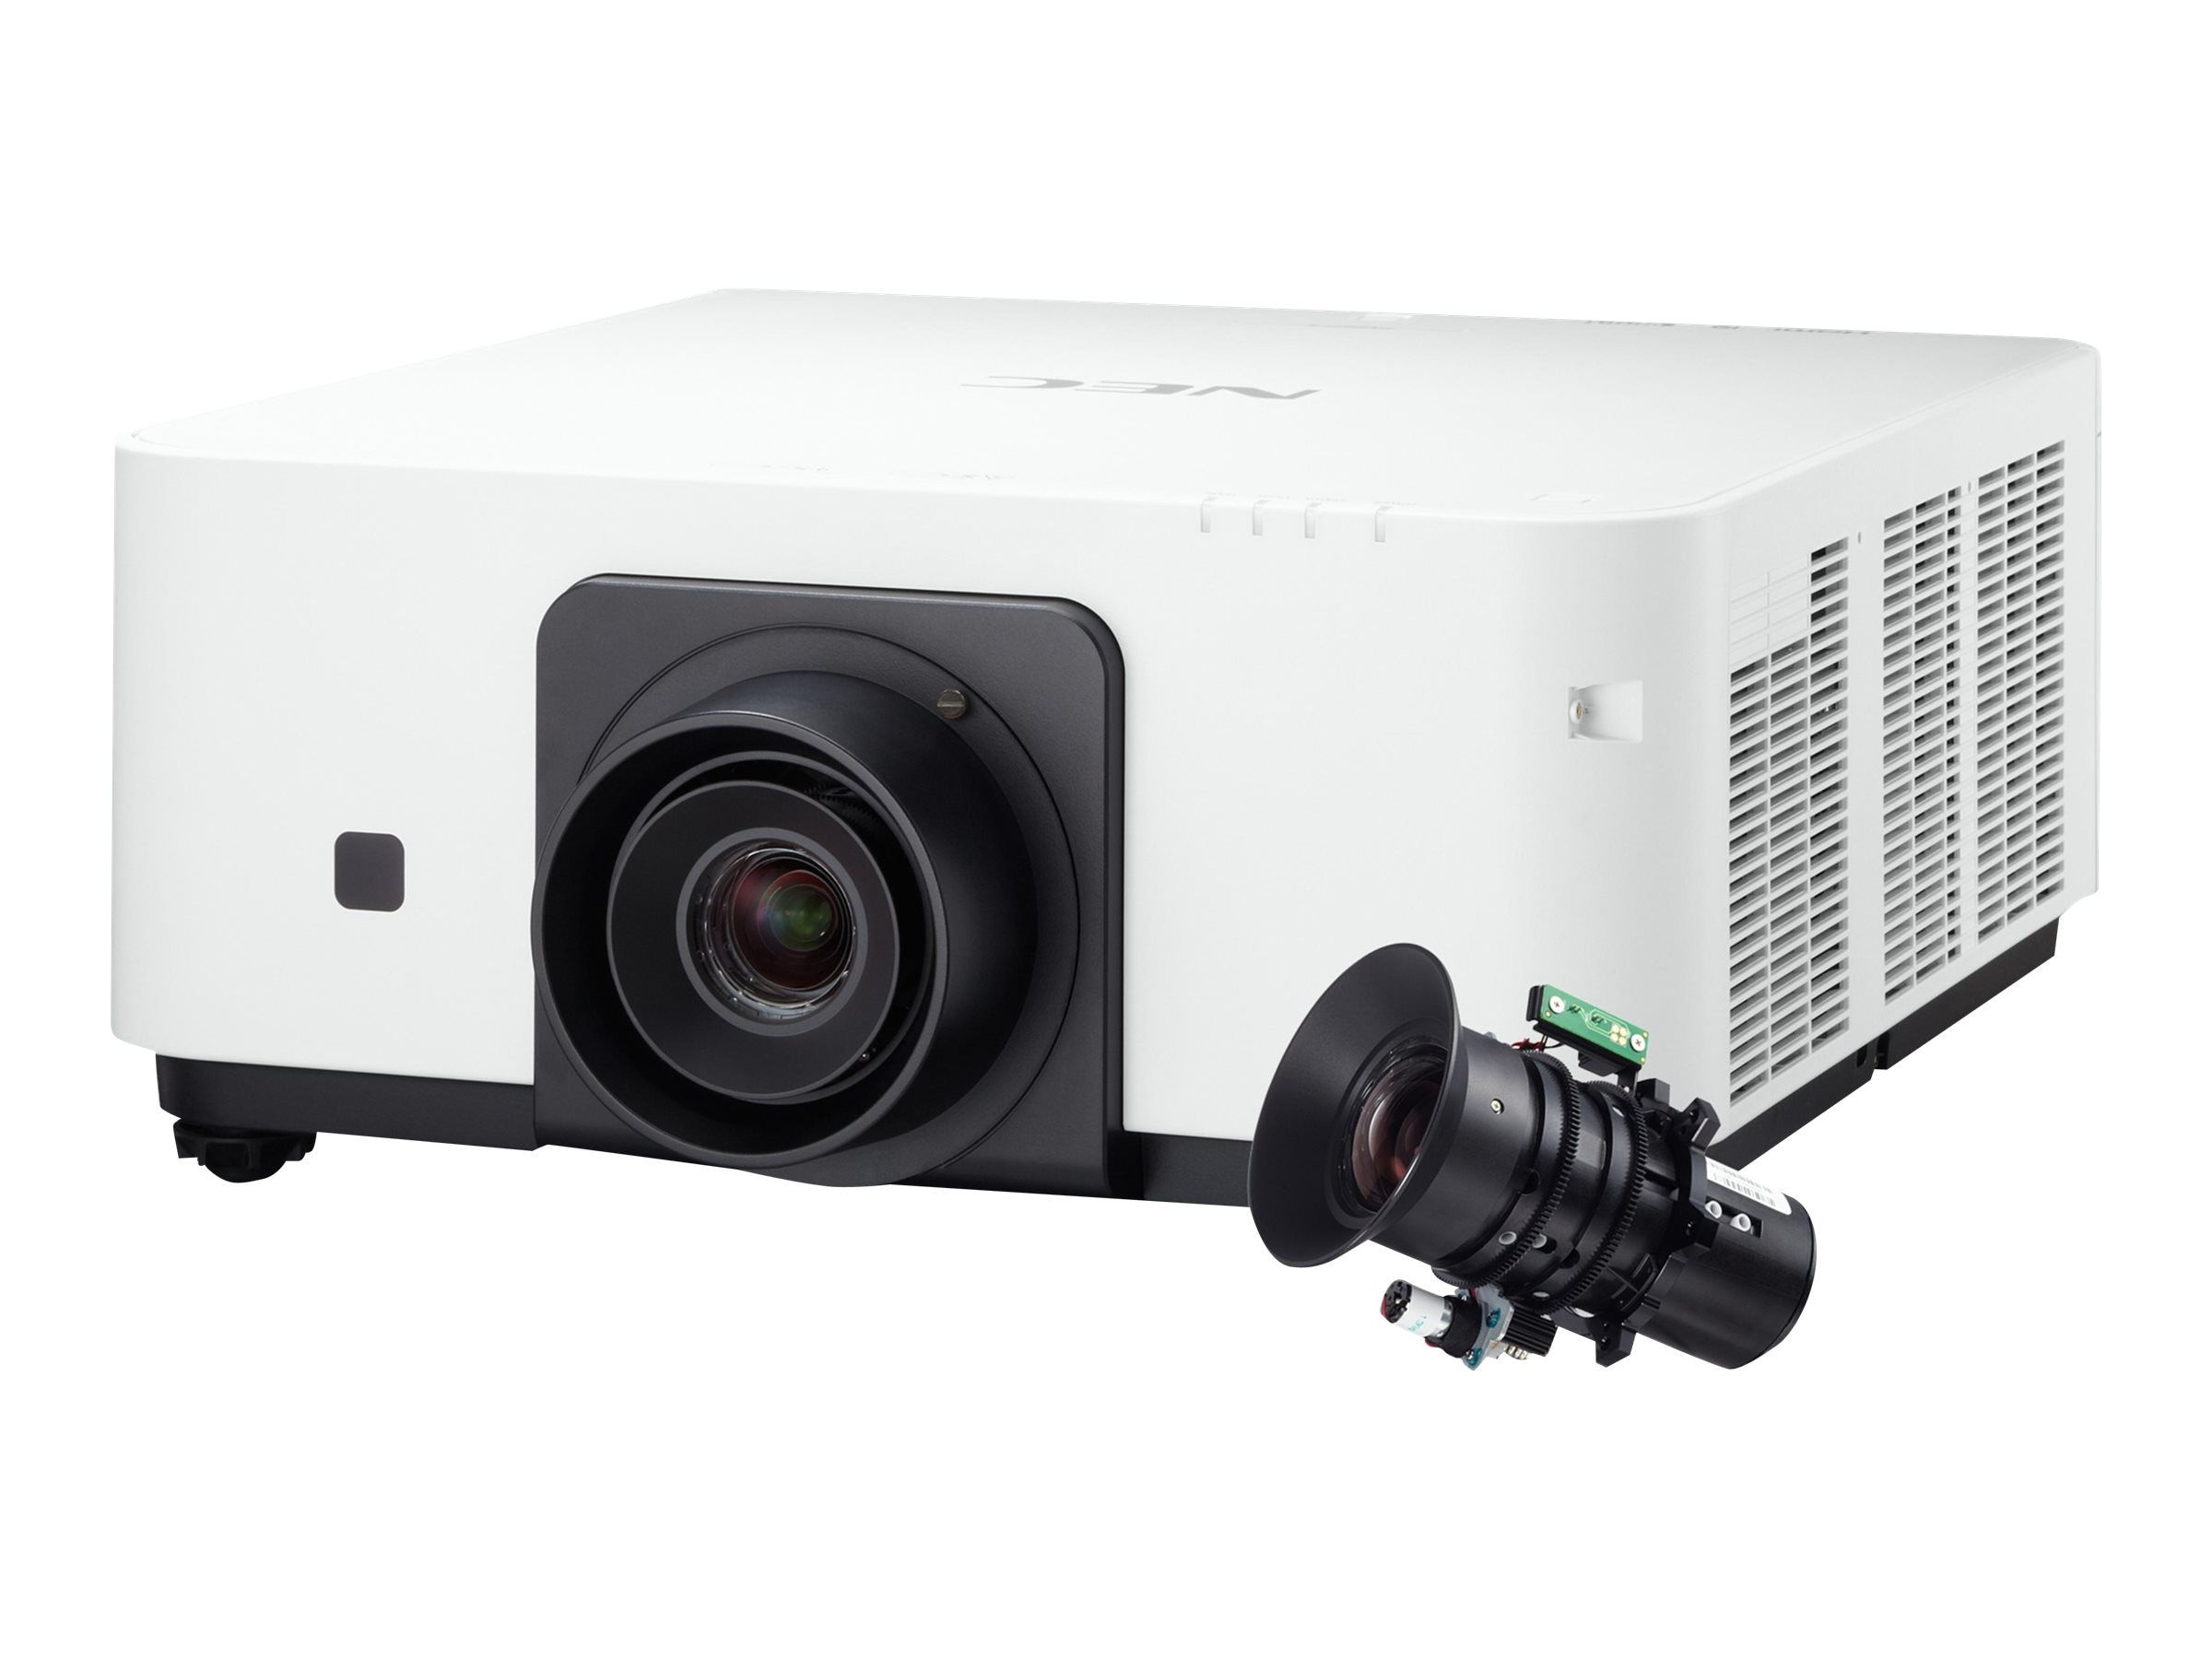 NEC PX602WL WXGA DLP Projector, 6000 Lumens, White with Zoom Lens